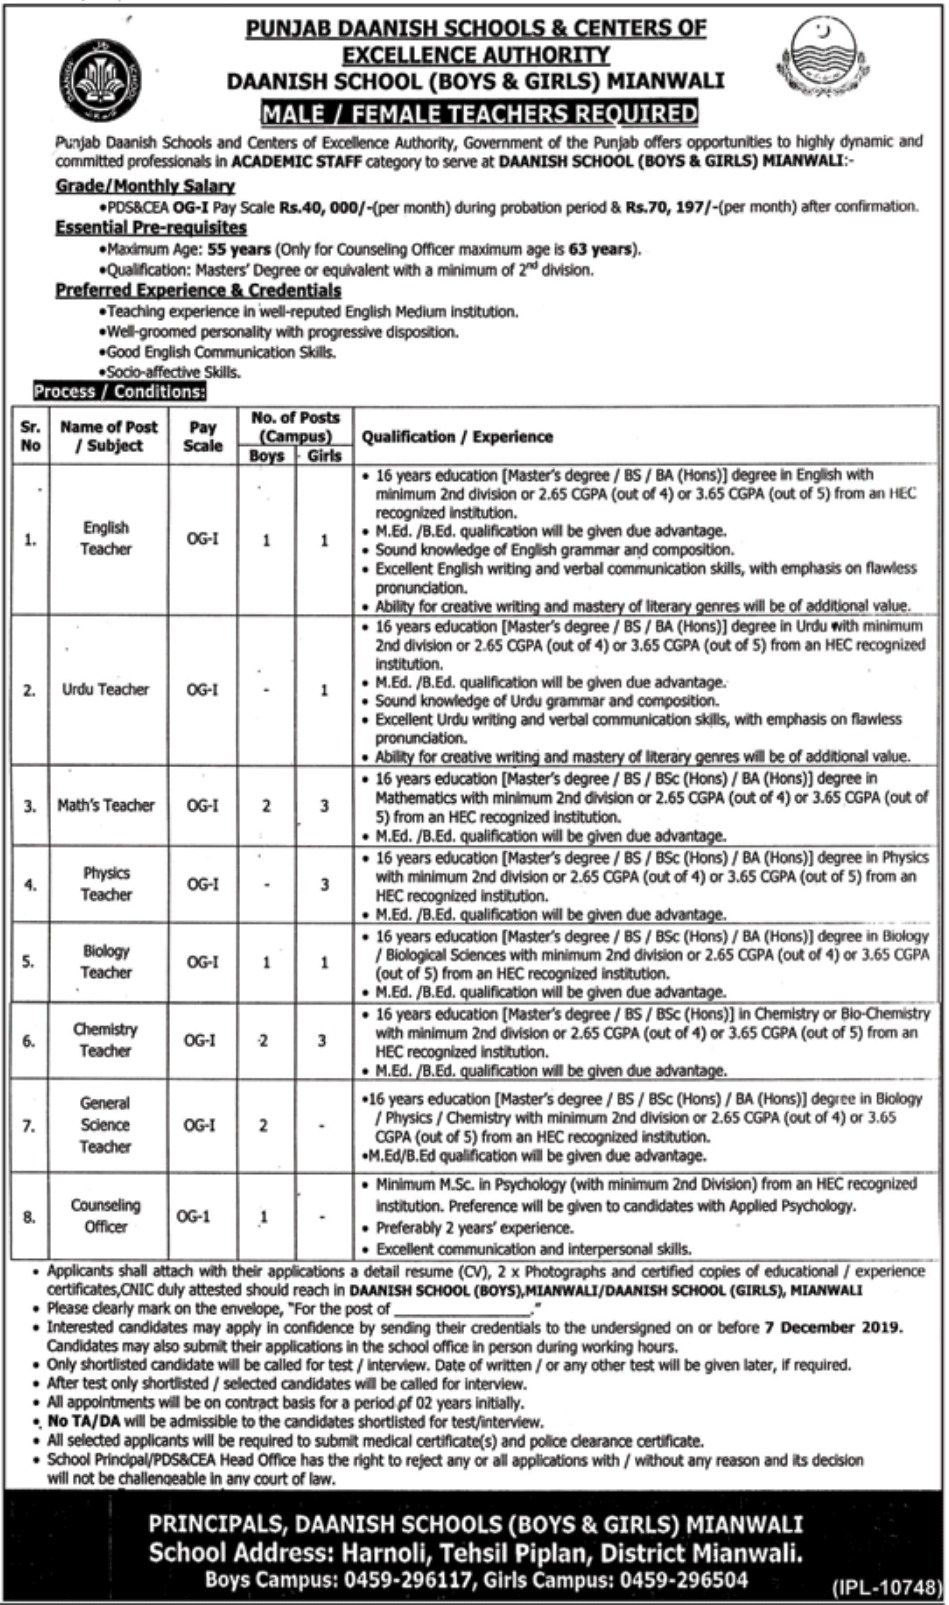 Punjab Daanish Schools & Centers of Excellence Authority Jobs 2019